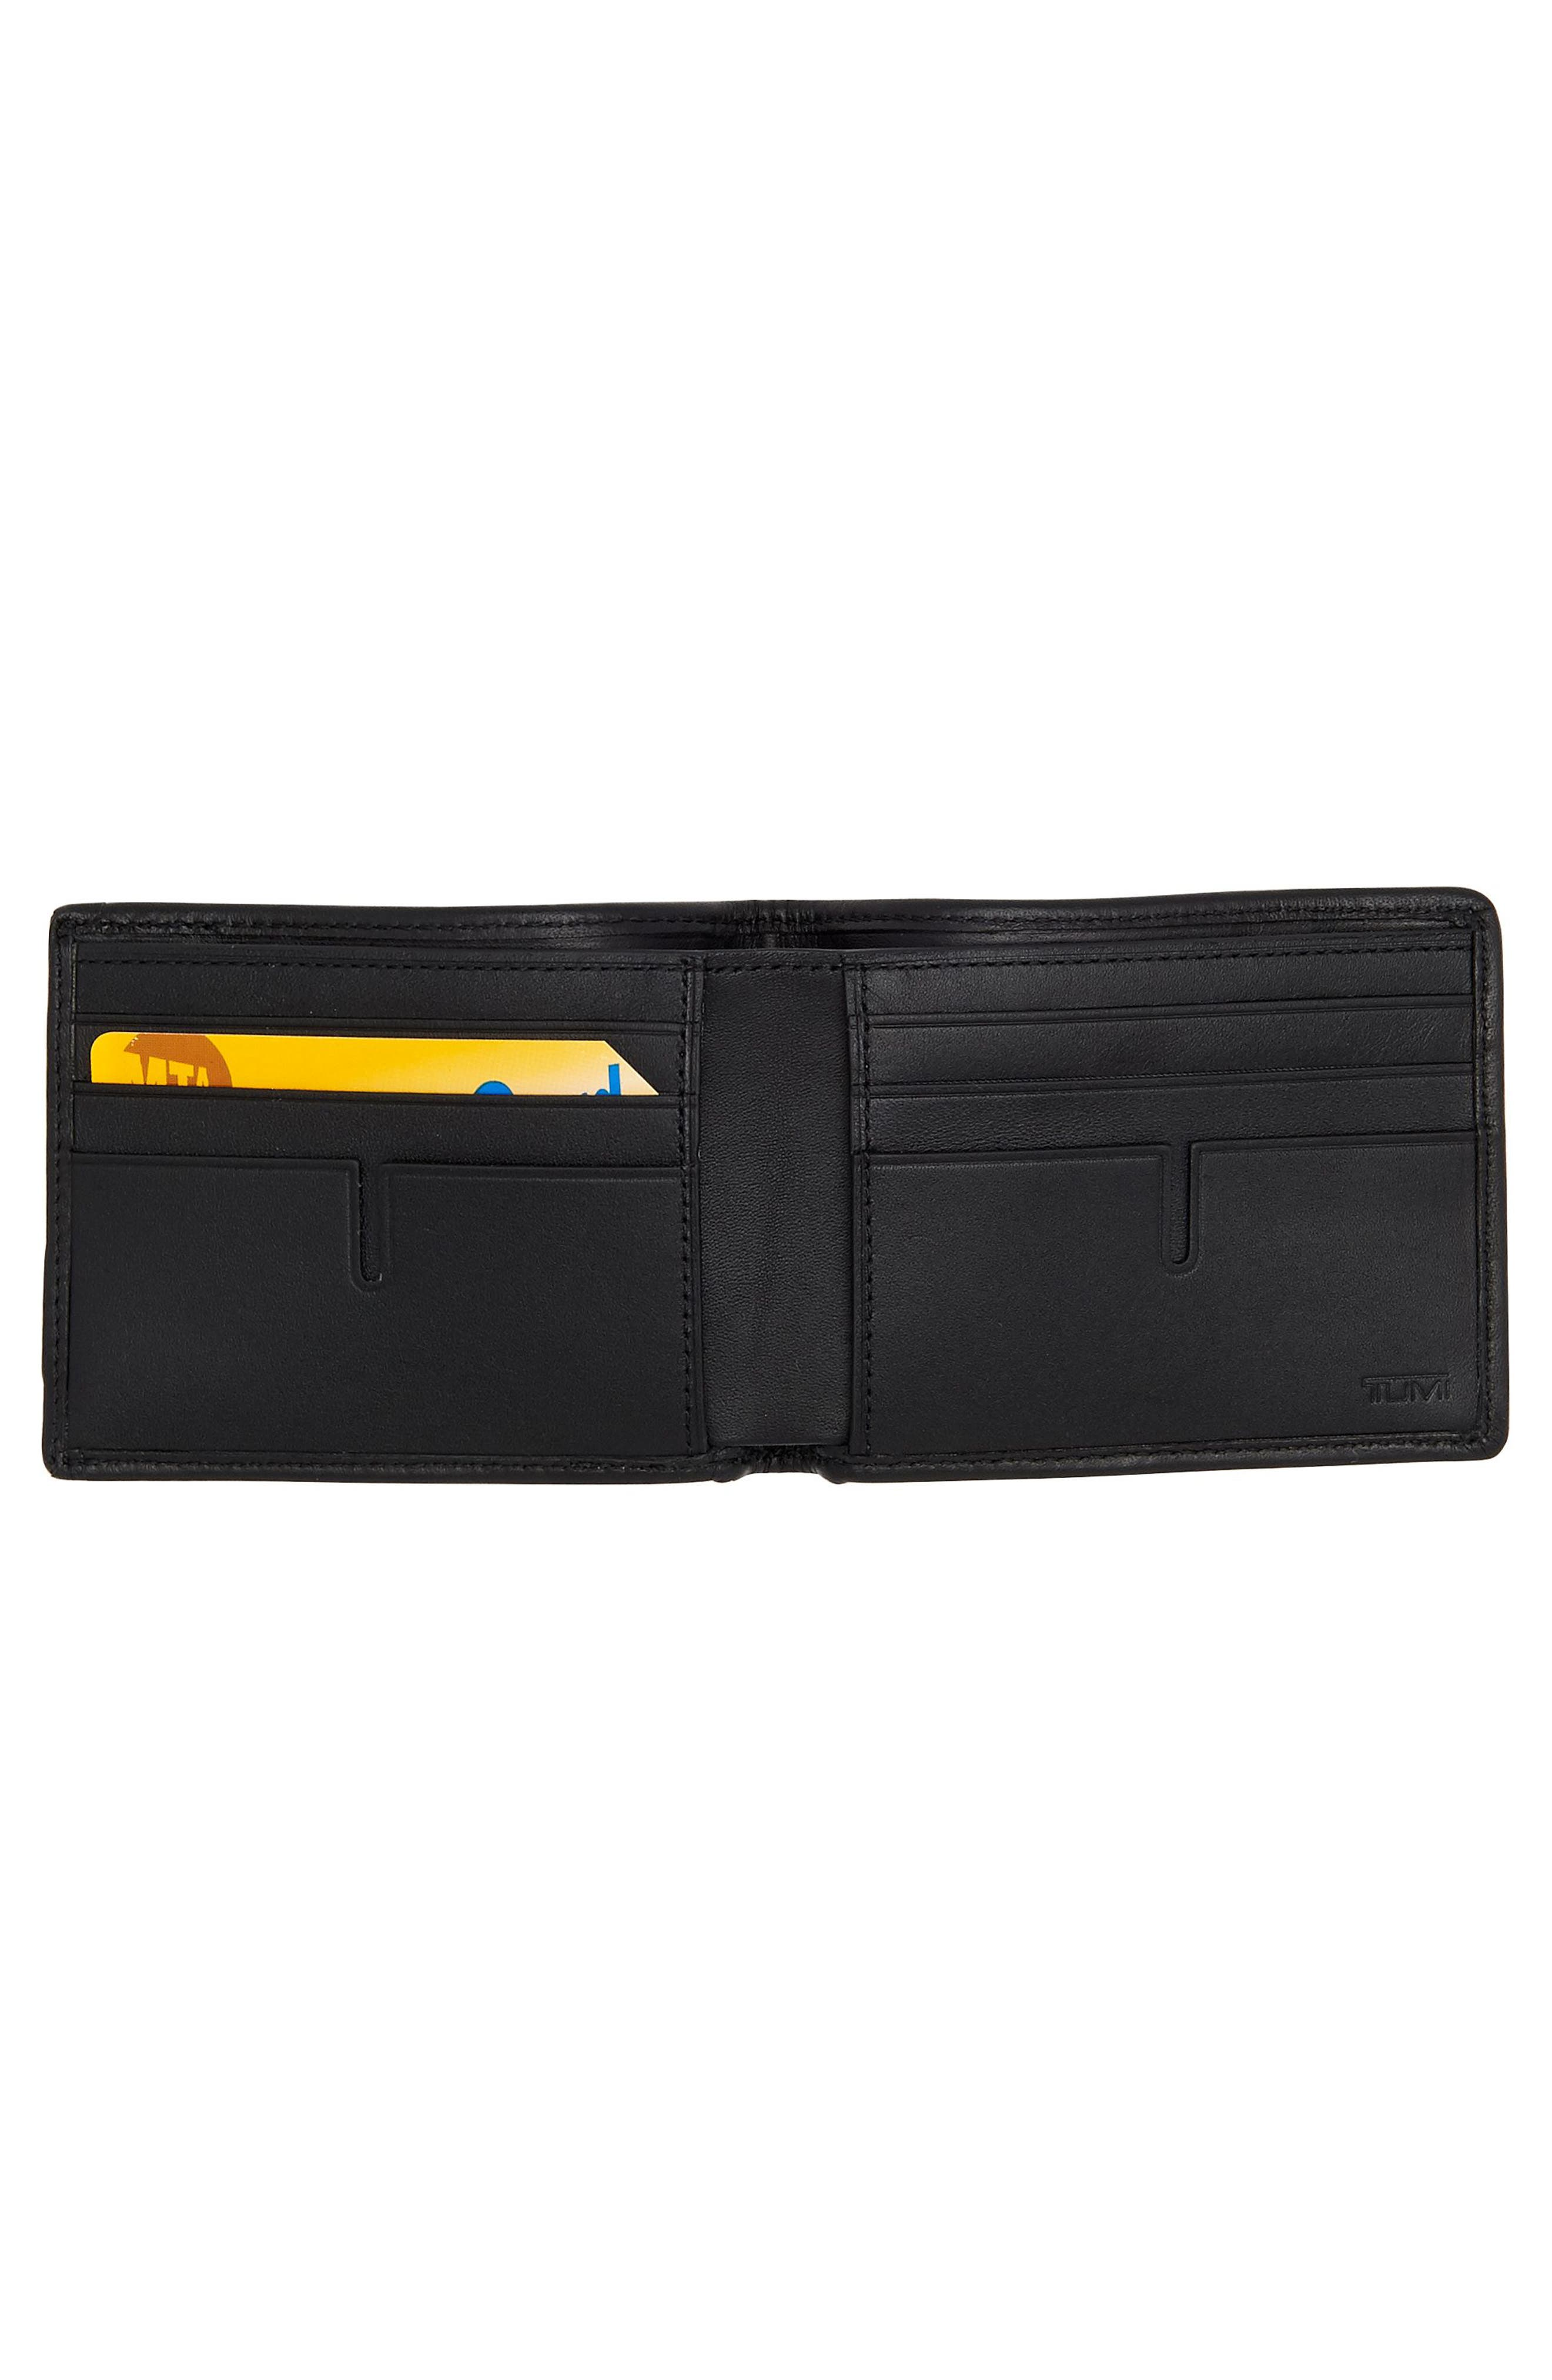 Alpha Billfold Wallet,                             Alternate thumbnail 2, color,                             022